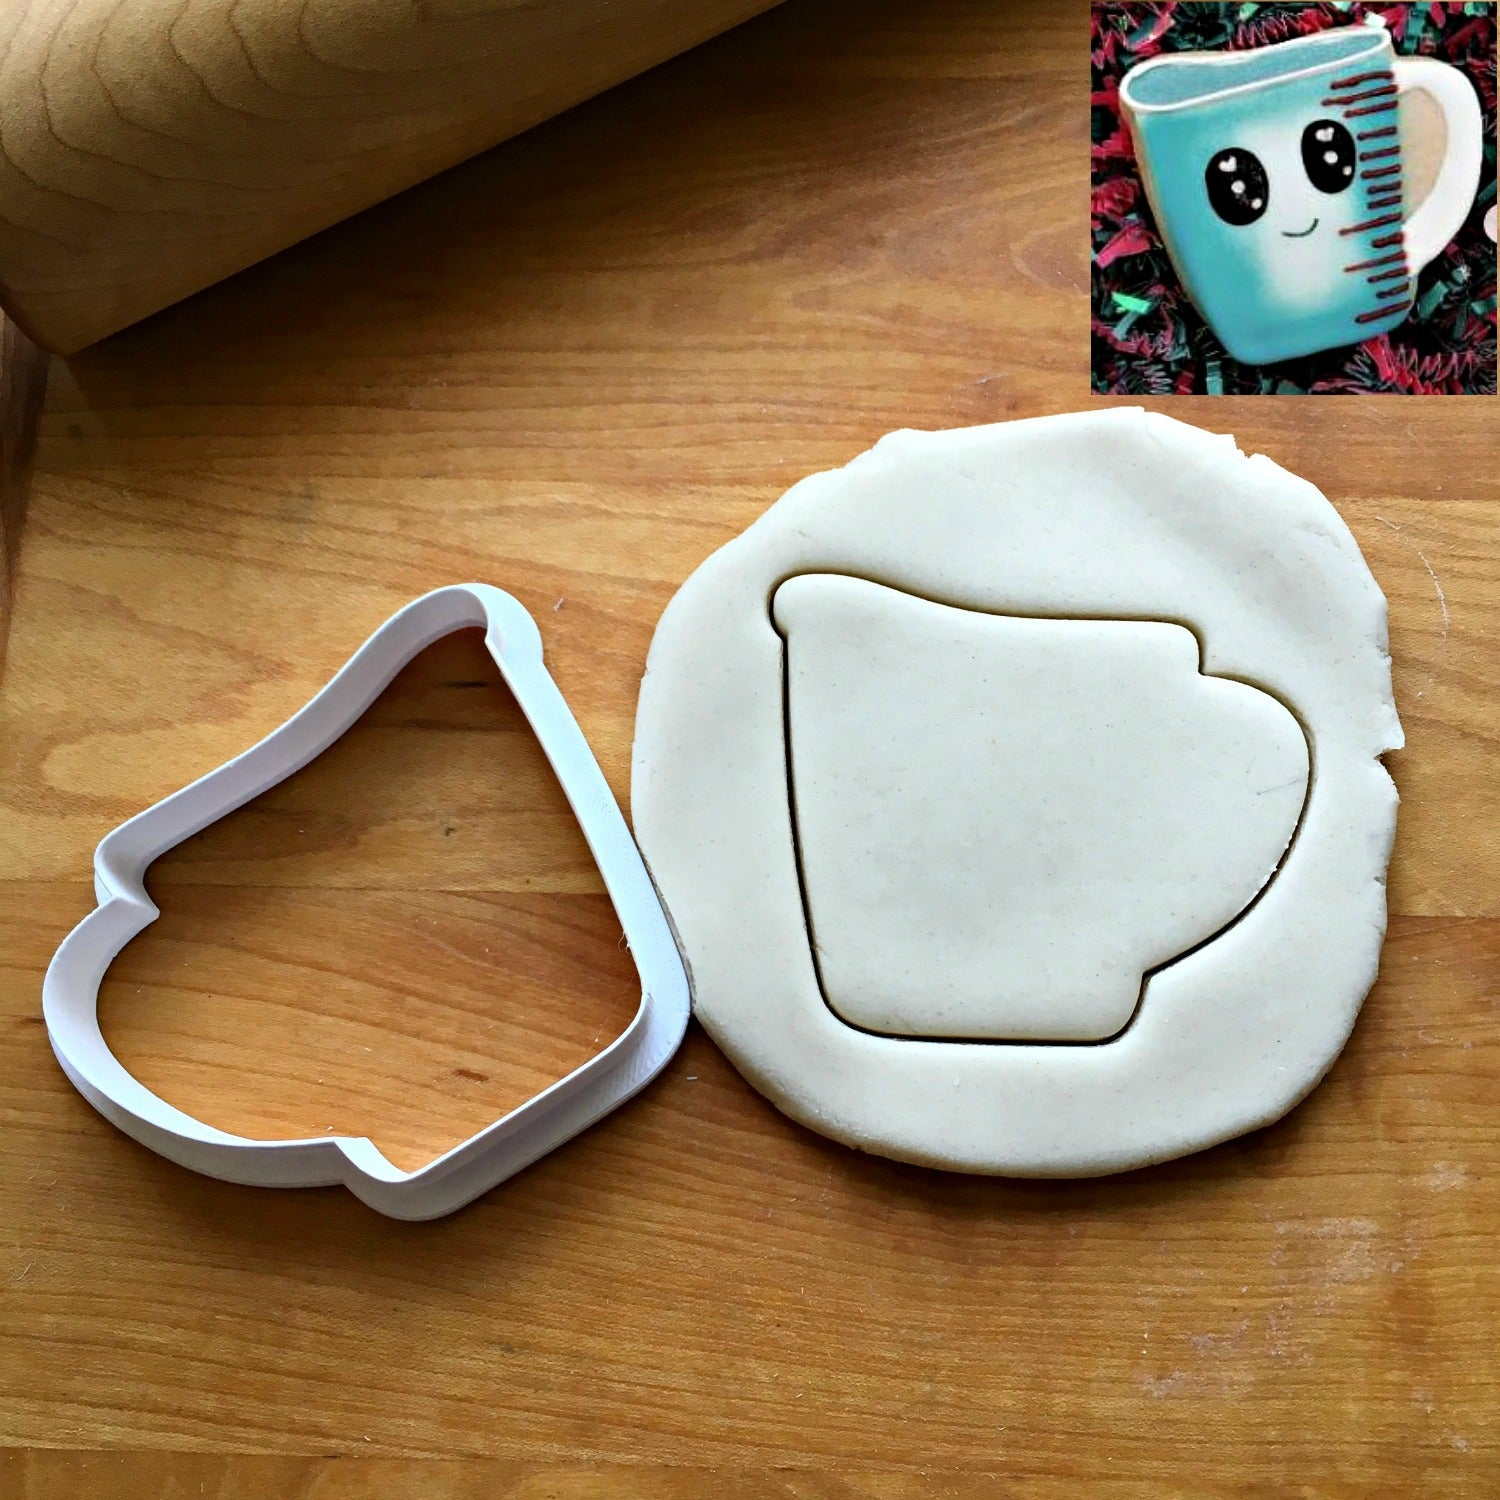 Measuring Cup Cookie Cutter/Dishwasher Safe